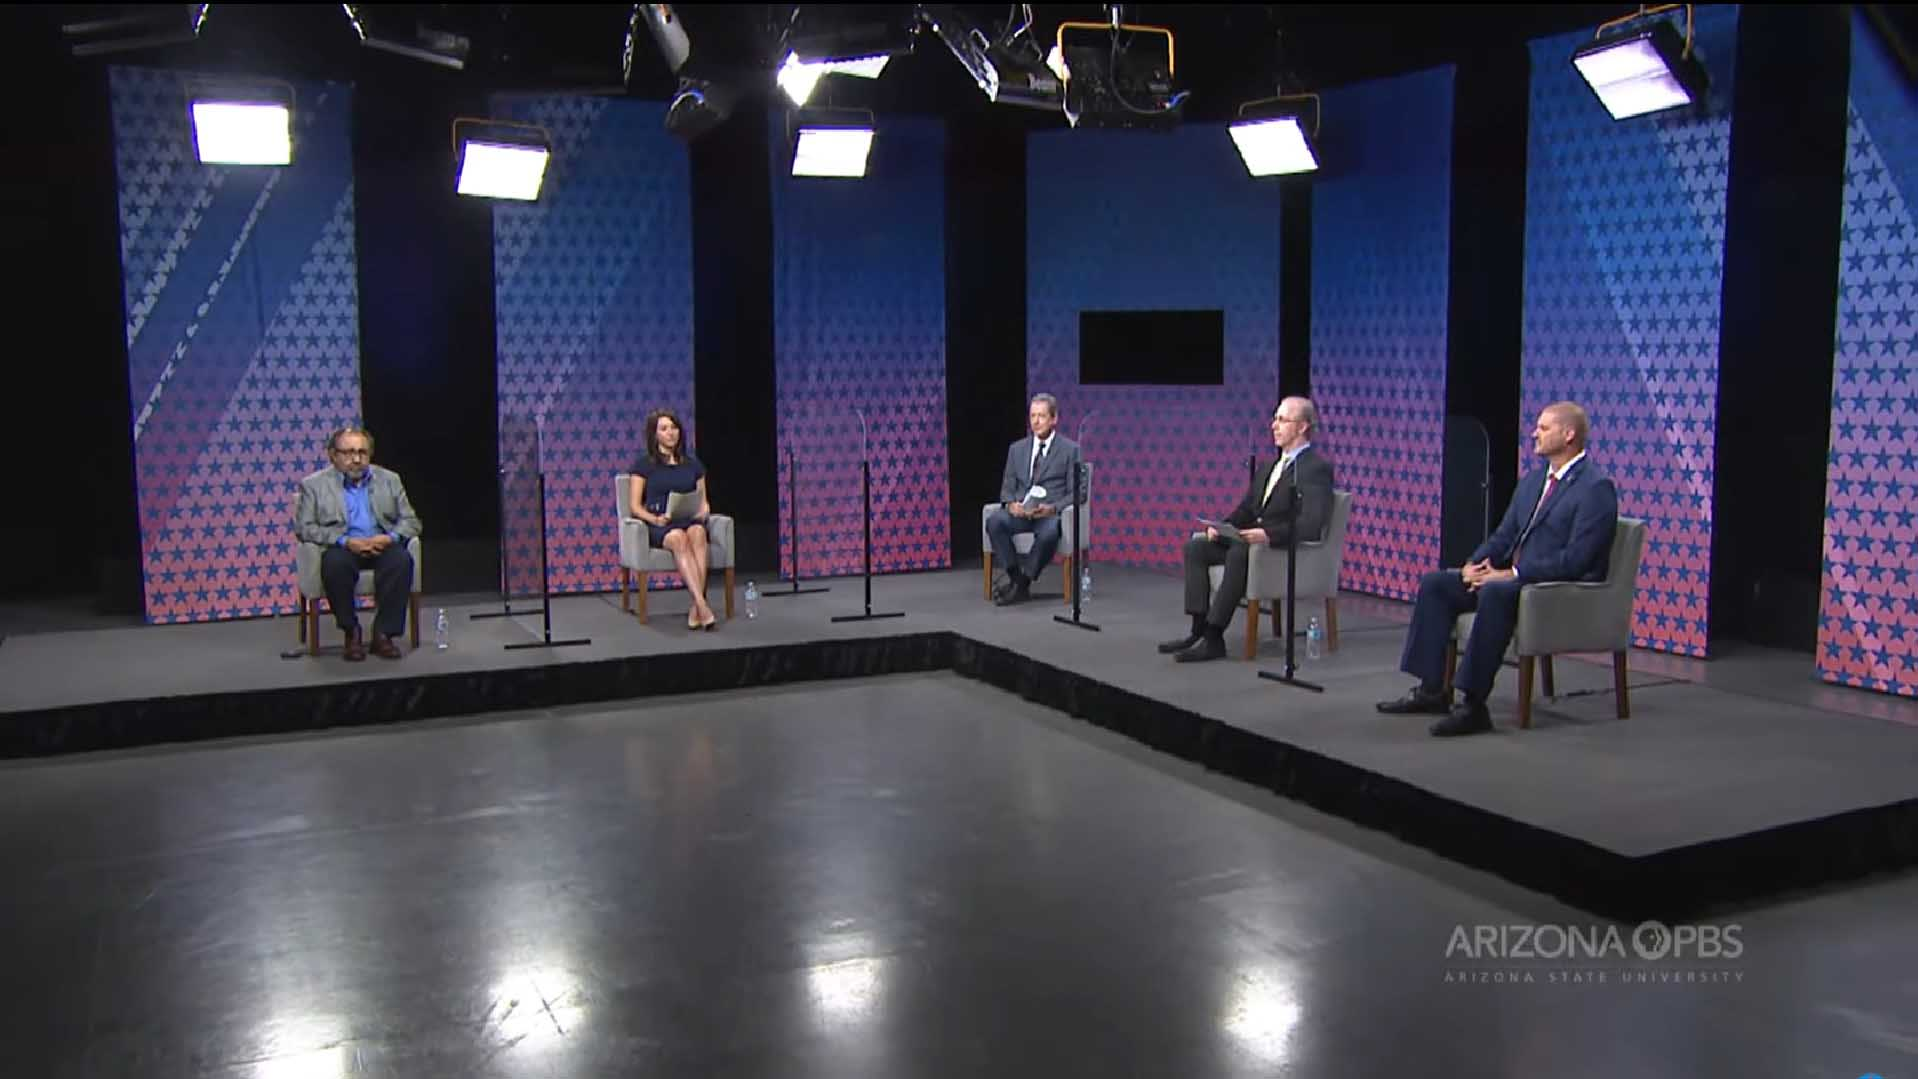 Raúl Grijalva (far left) and Daniel Wood (far right) debate in the Arizona PBS studio on September 28, 2020.